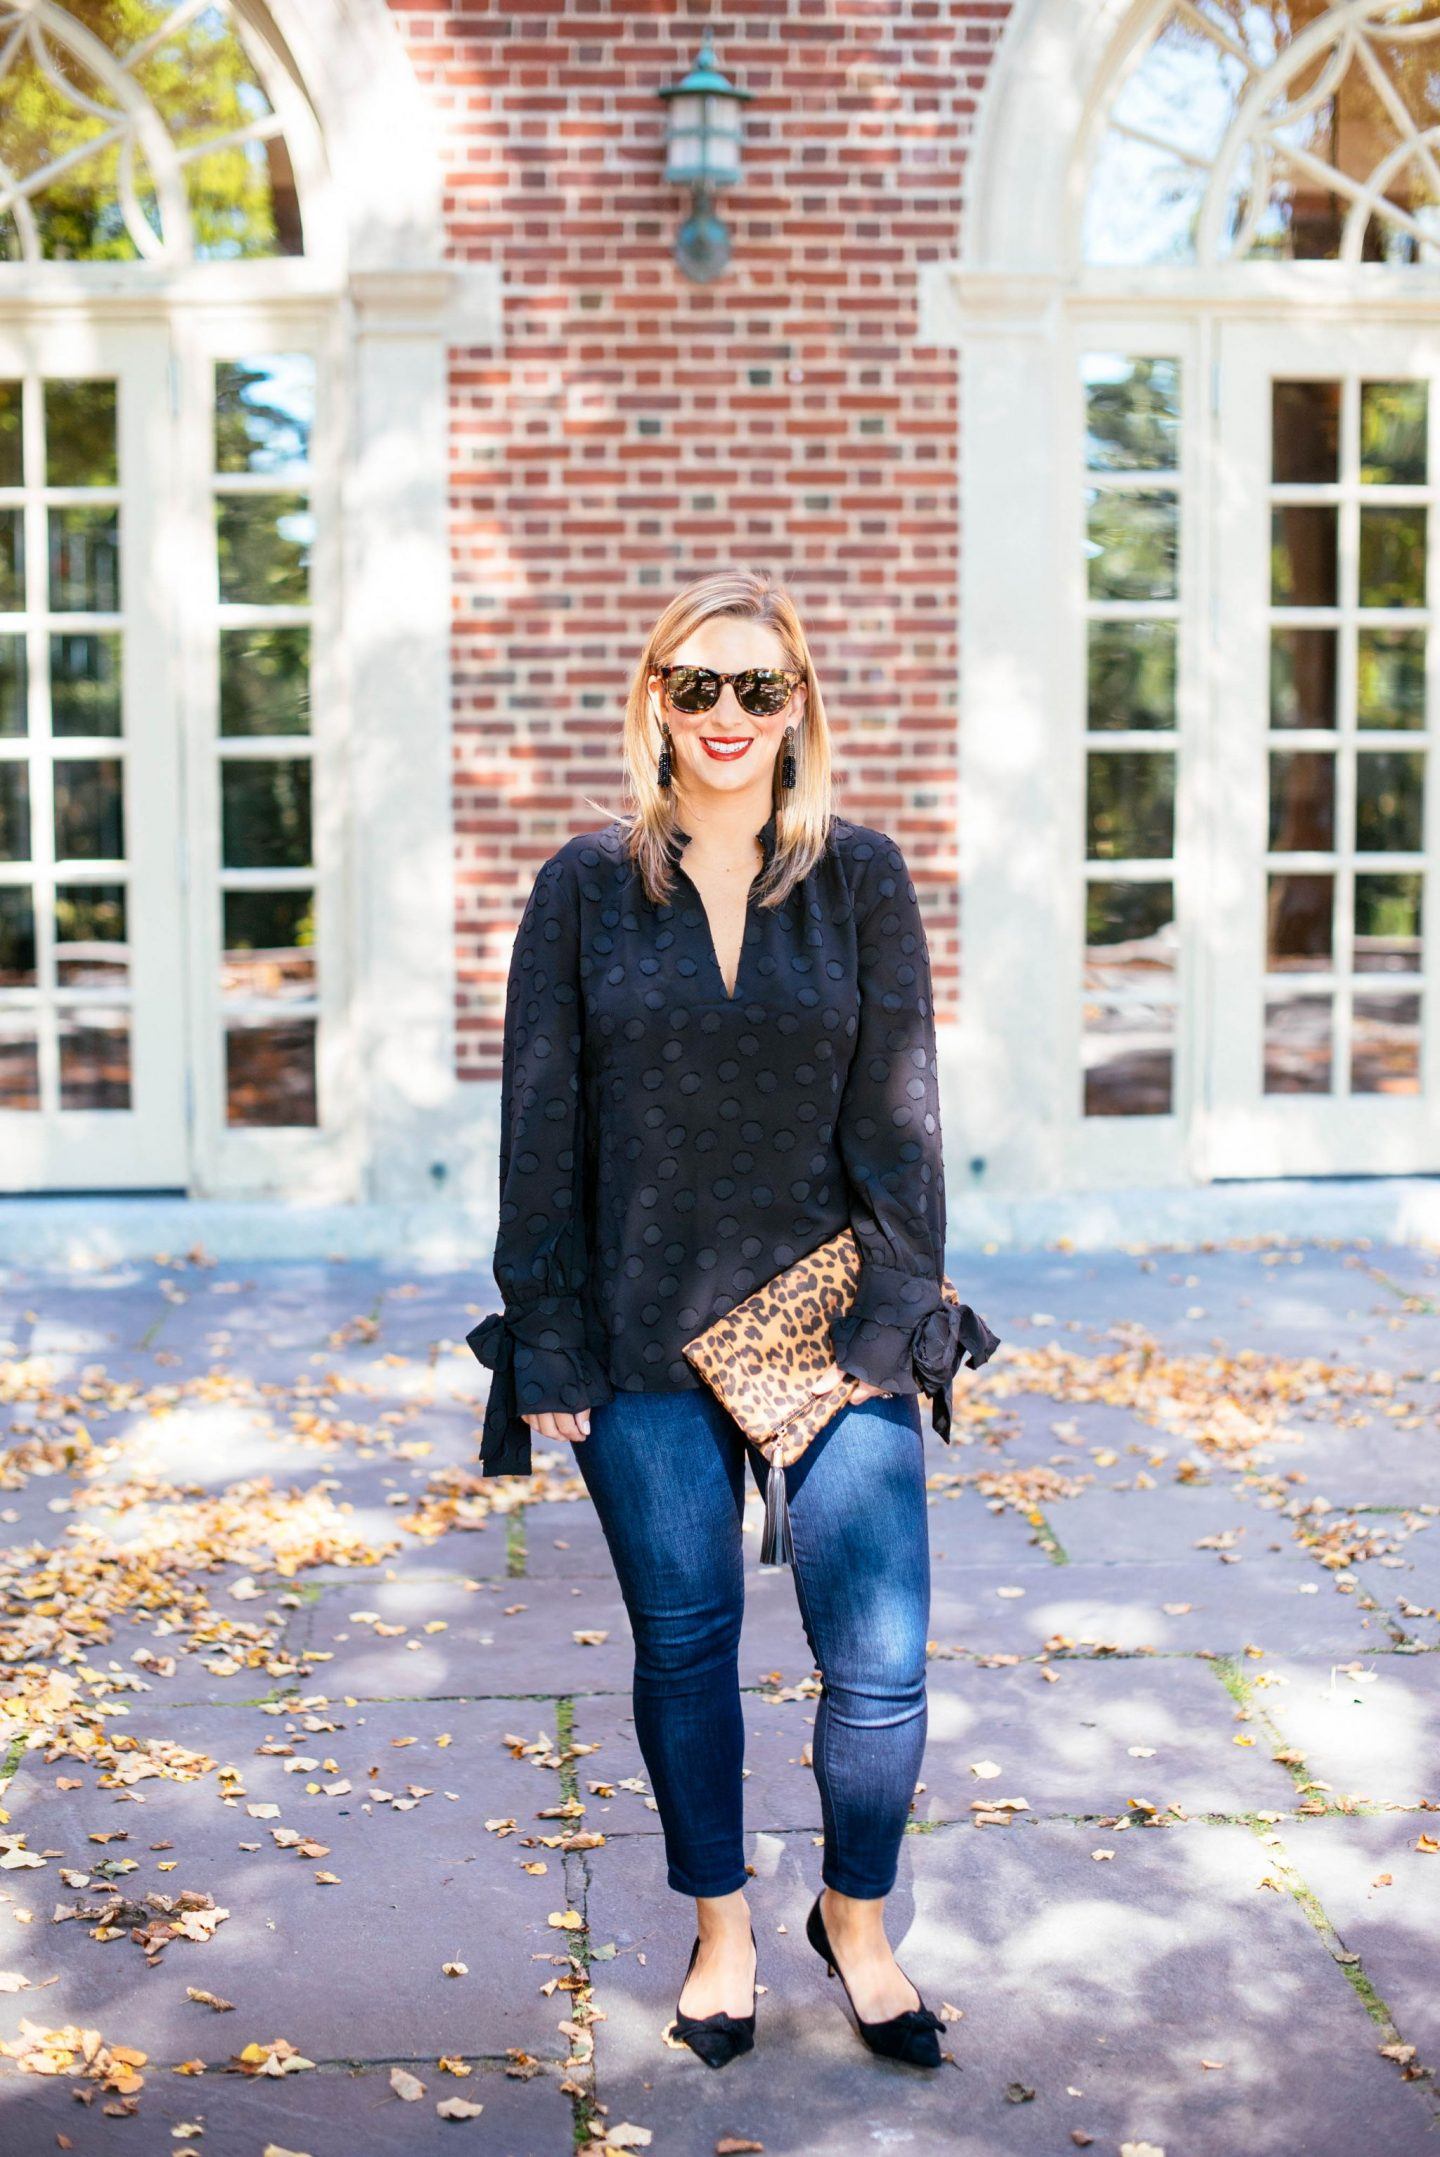 Bows, Dots, Leopard And How To Mix Patterns Subtly